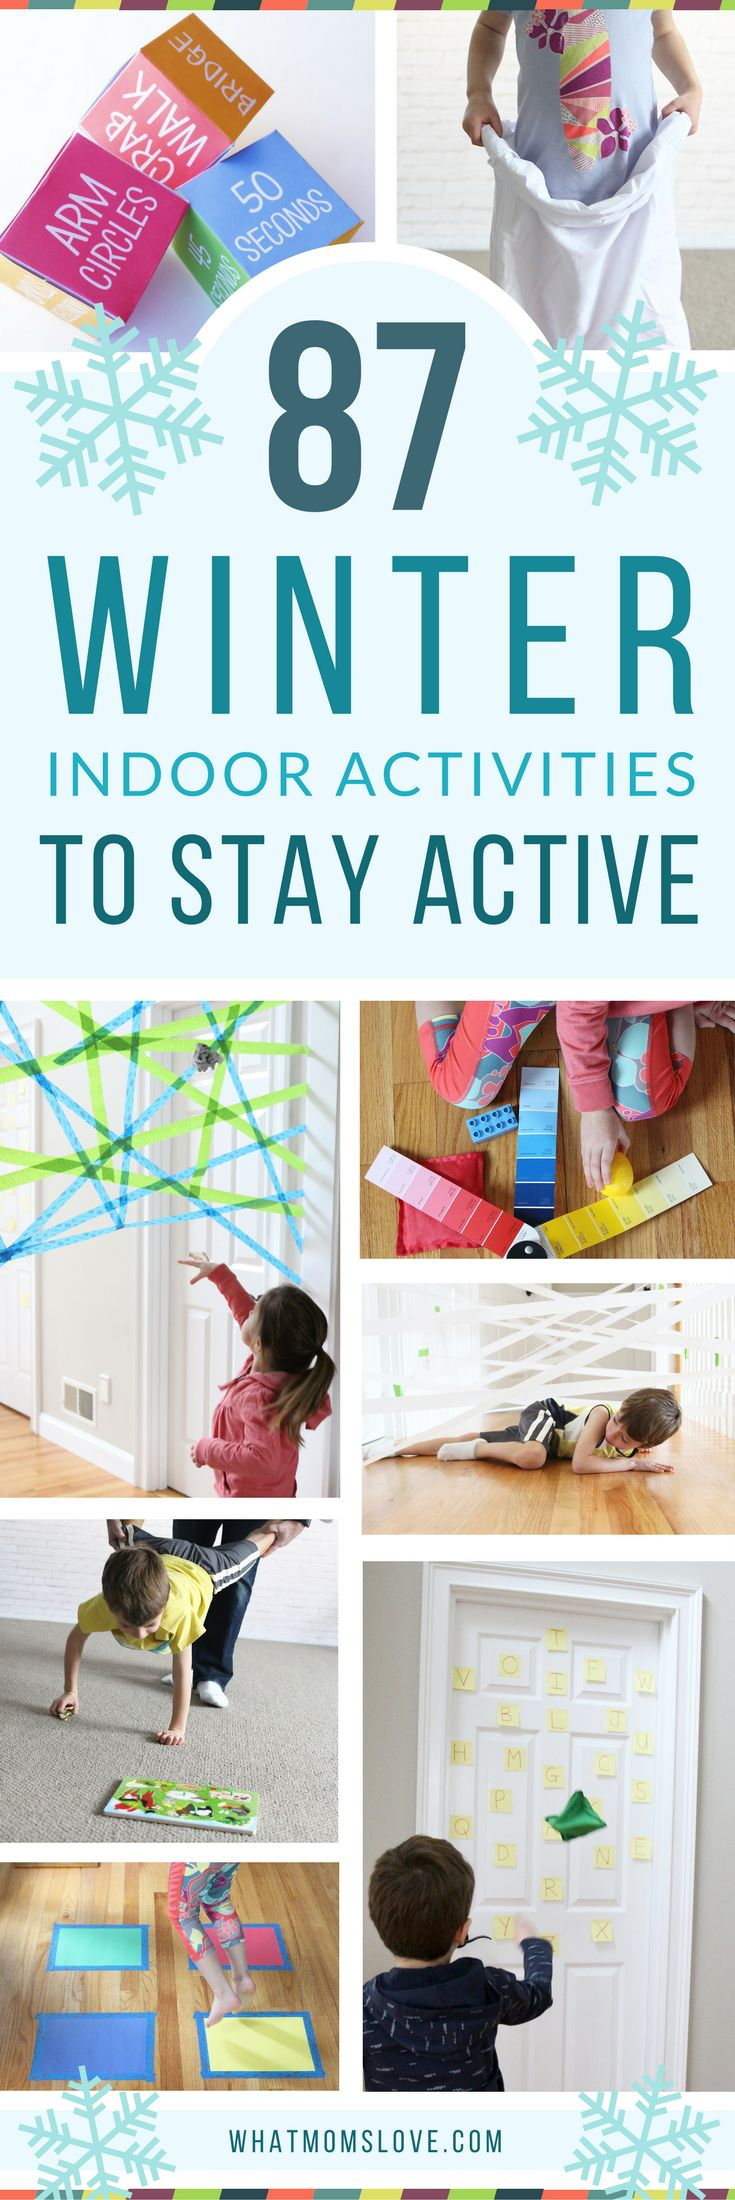 The Best Active Indoor Activities for Kids - perfect for Winter snow days! Such fun gross motor games and activity ideas for toddlers, preschoolers and up to help them burn energy, blow off steam and beat cabin fever! For the full list visit www.whatmomslove.com